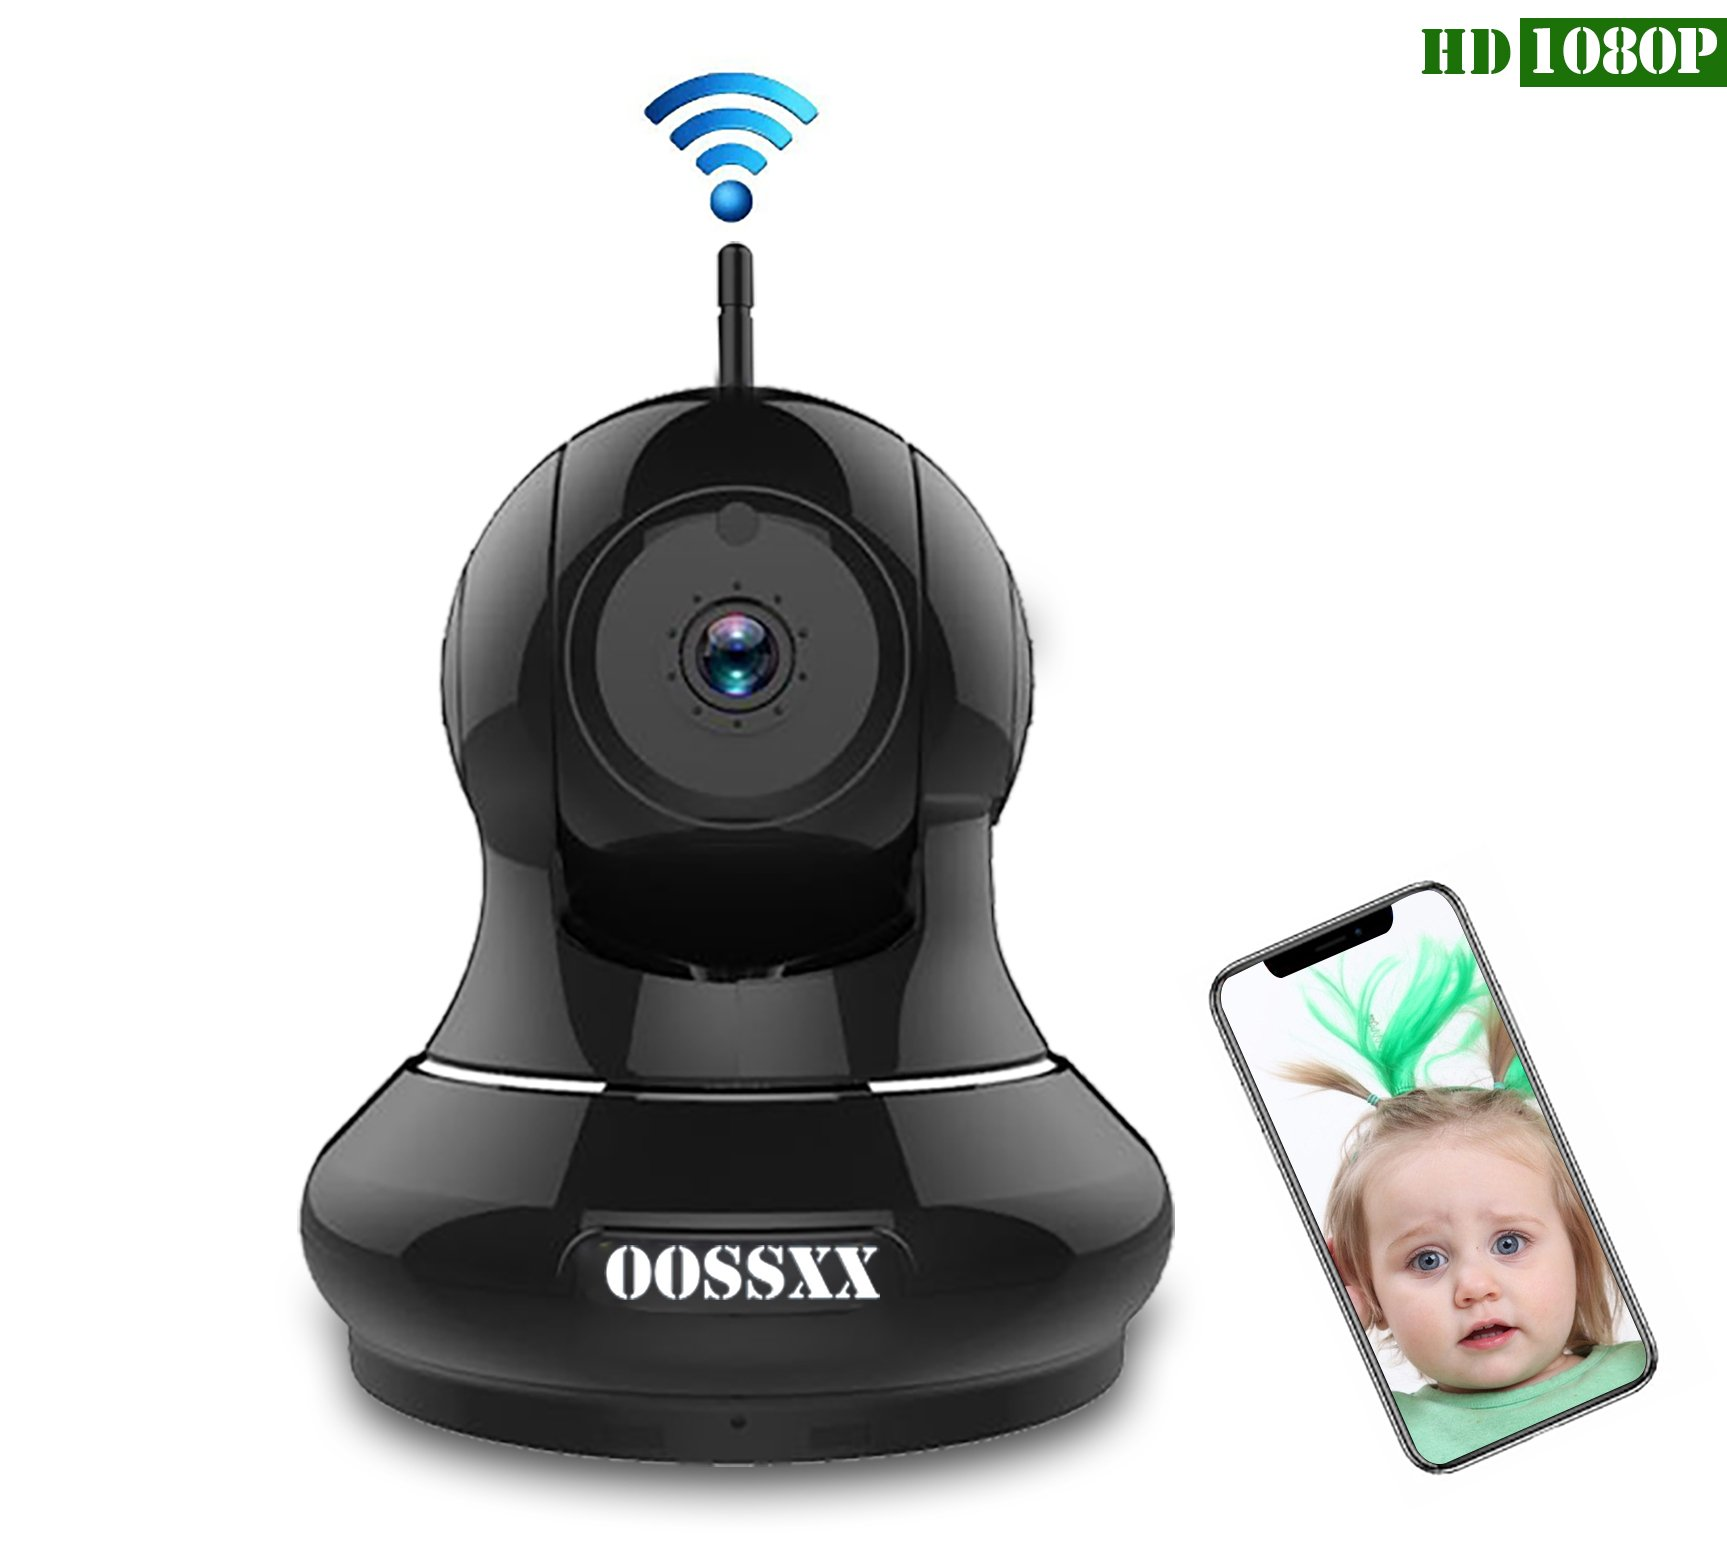 1080P Home/Business Wireless IP Camera, OOSSXX HD Indoor Wireless Security Camera with Motion Detection, Two Way Audio, Pan/Tilt, Night Vision, Multi camera preview,for Baby Monitor, Nanny Cam,Pet Cam